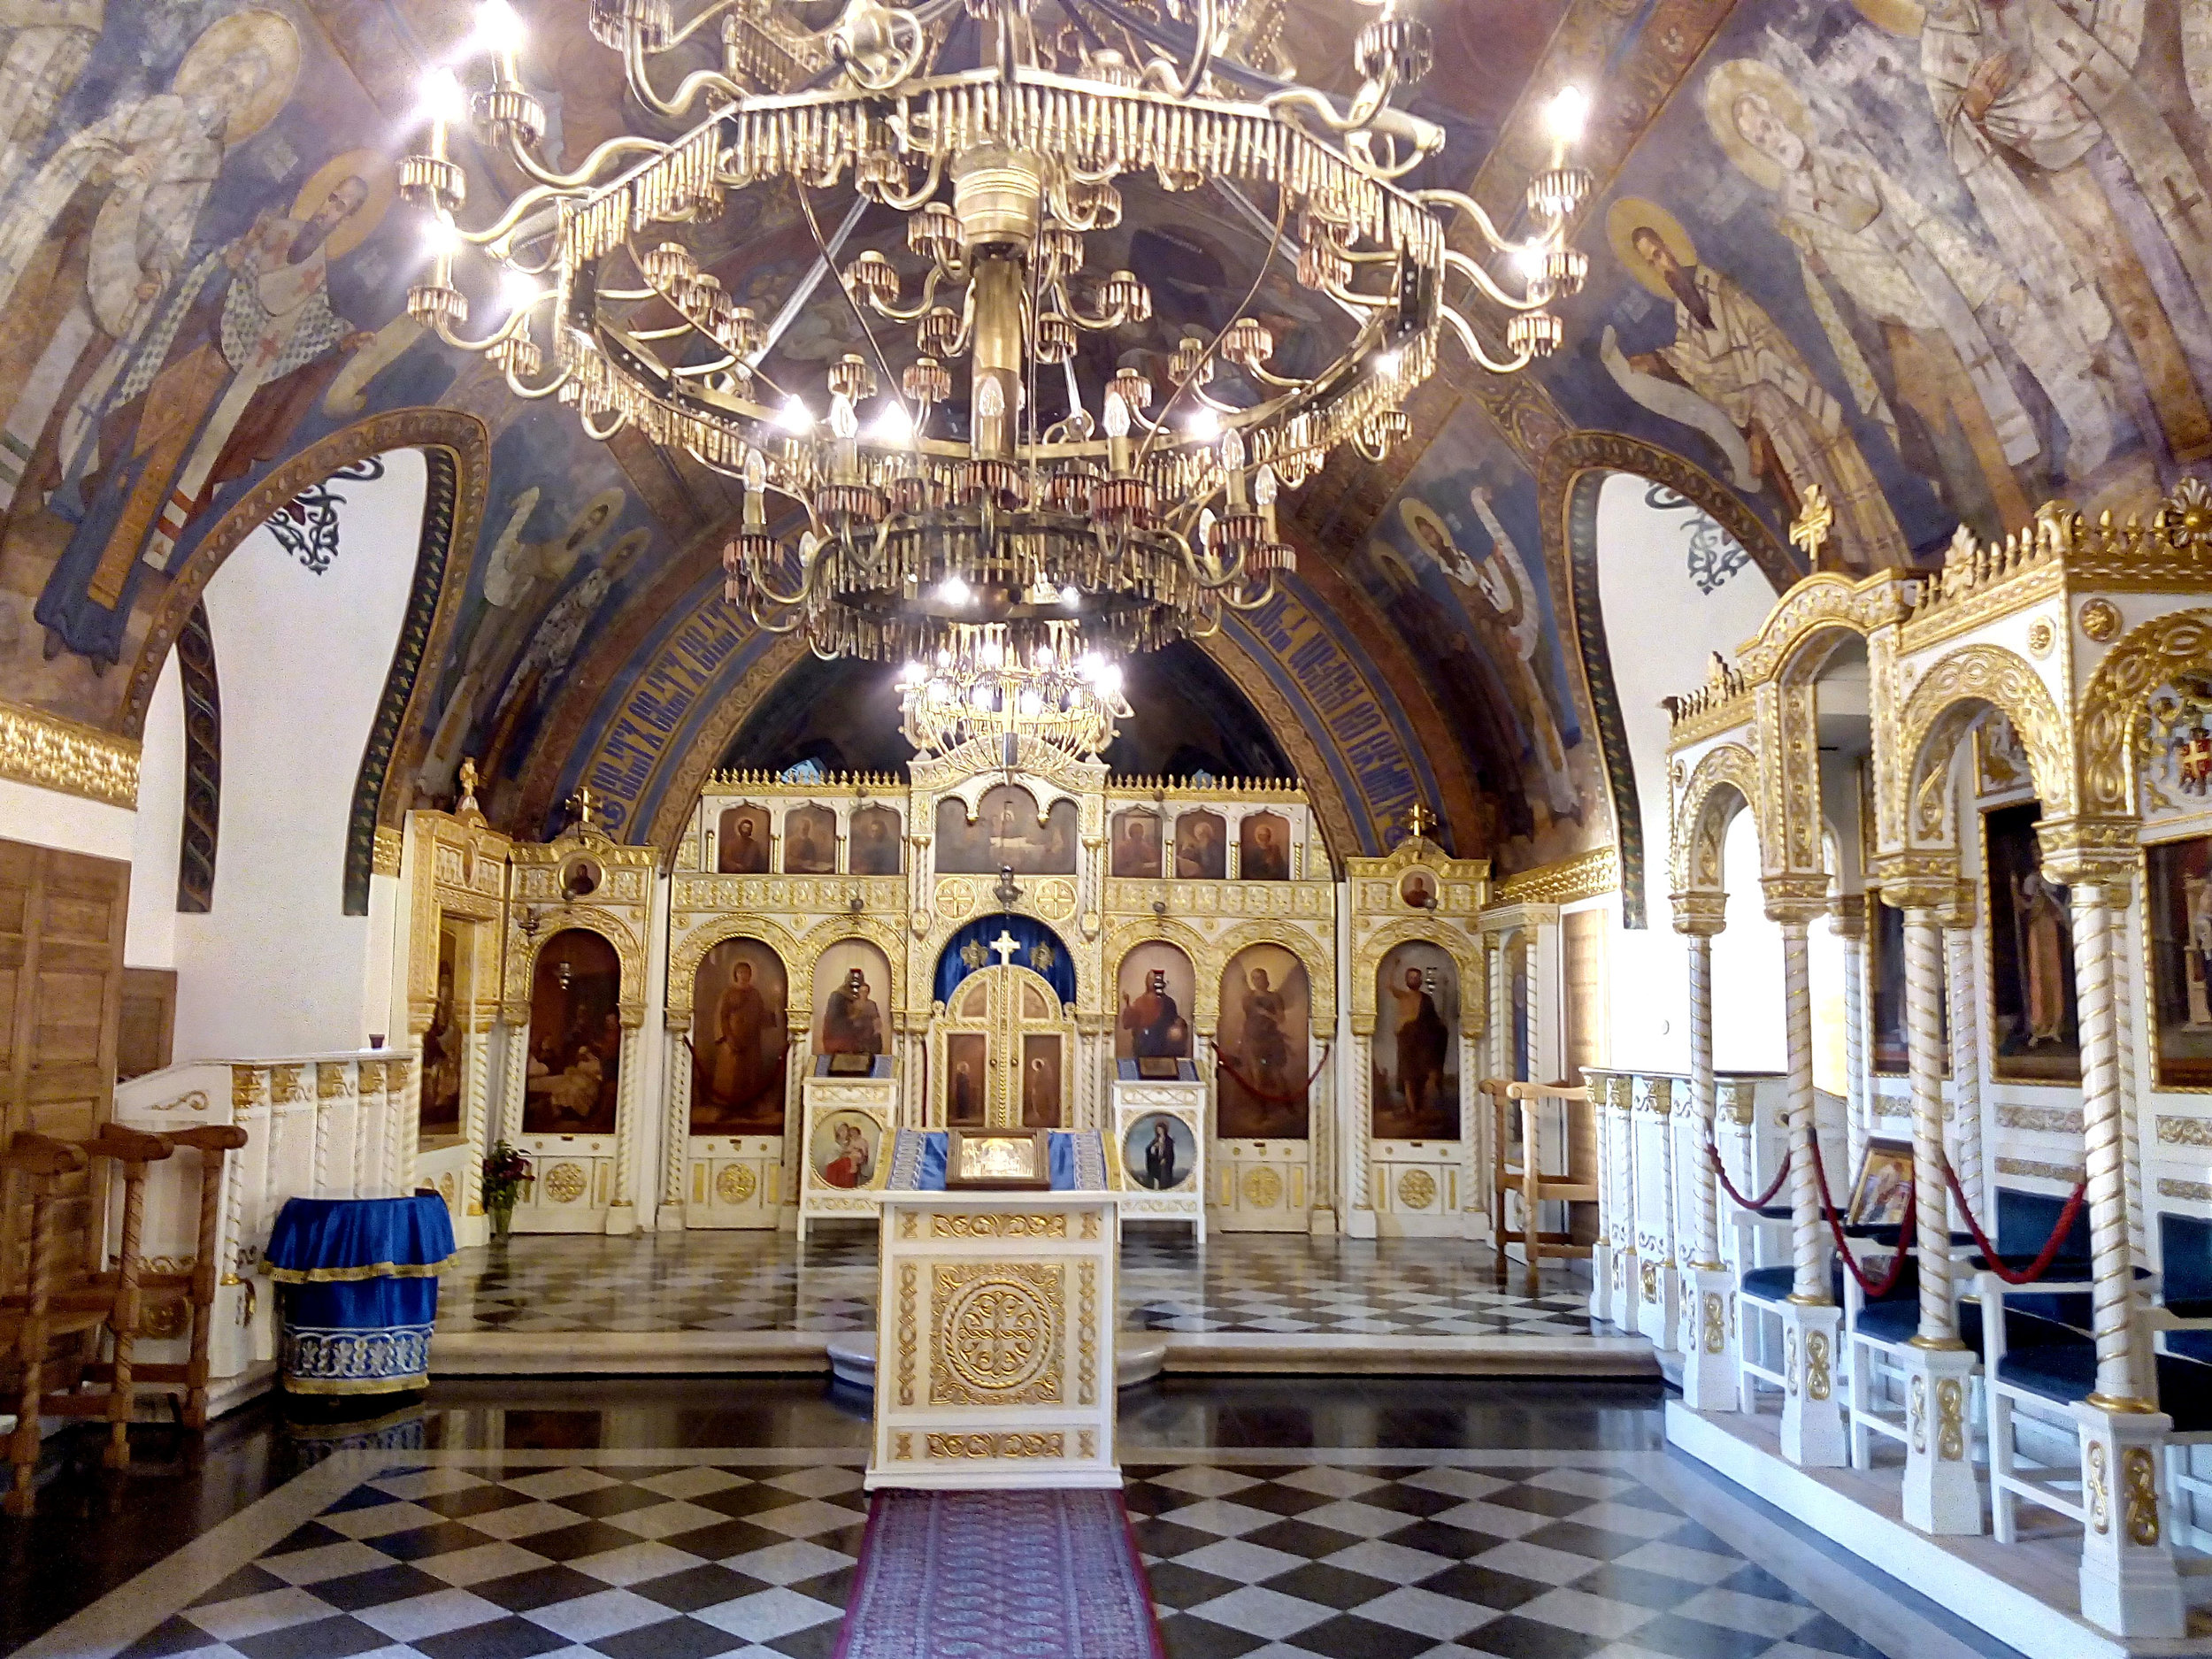 Interior of Ružica Church